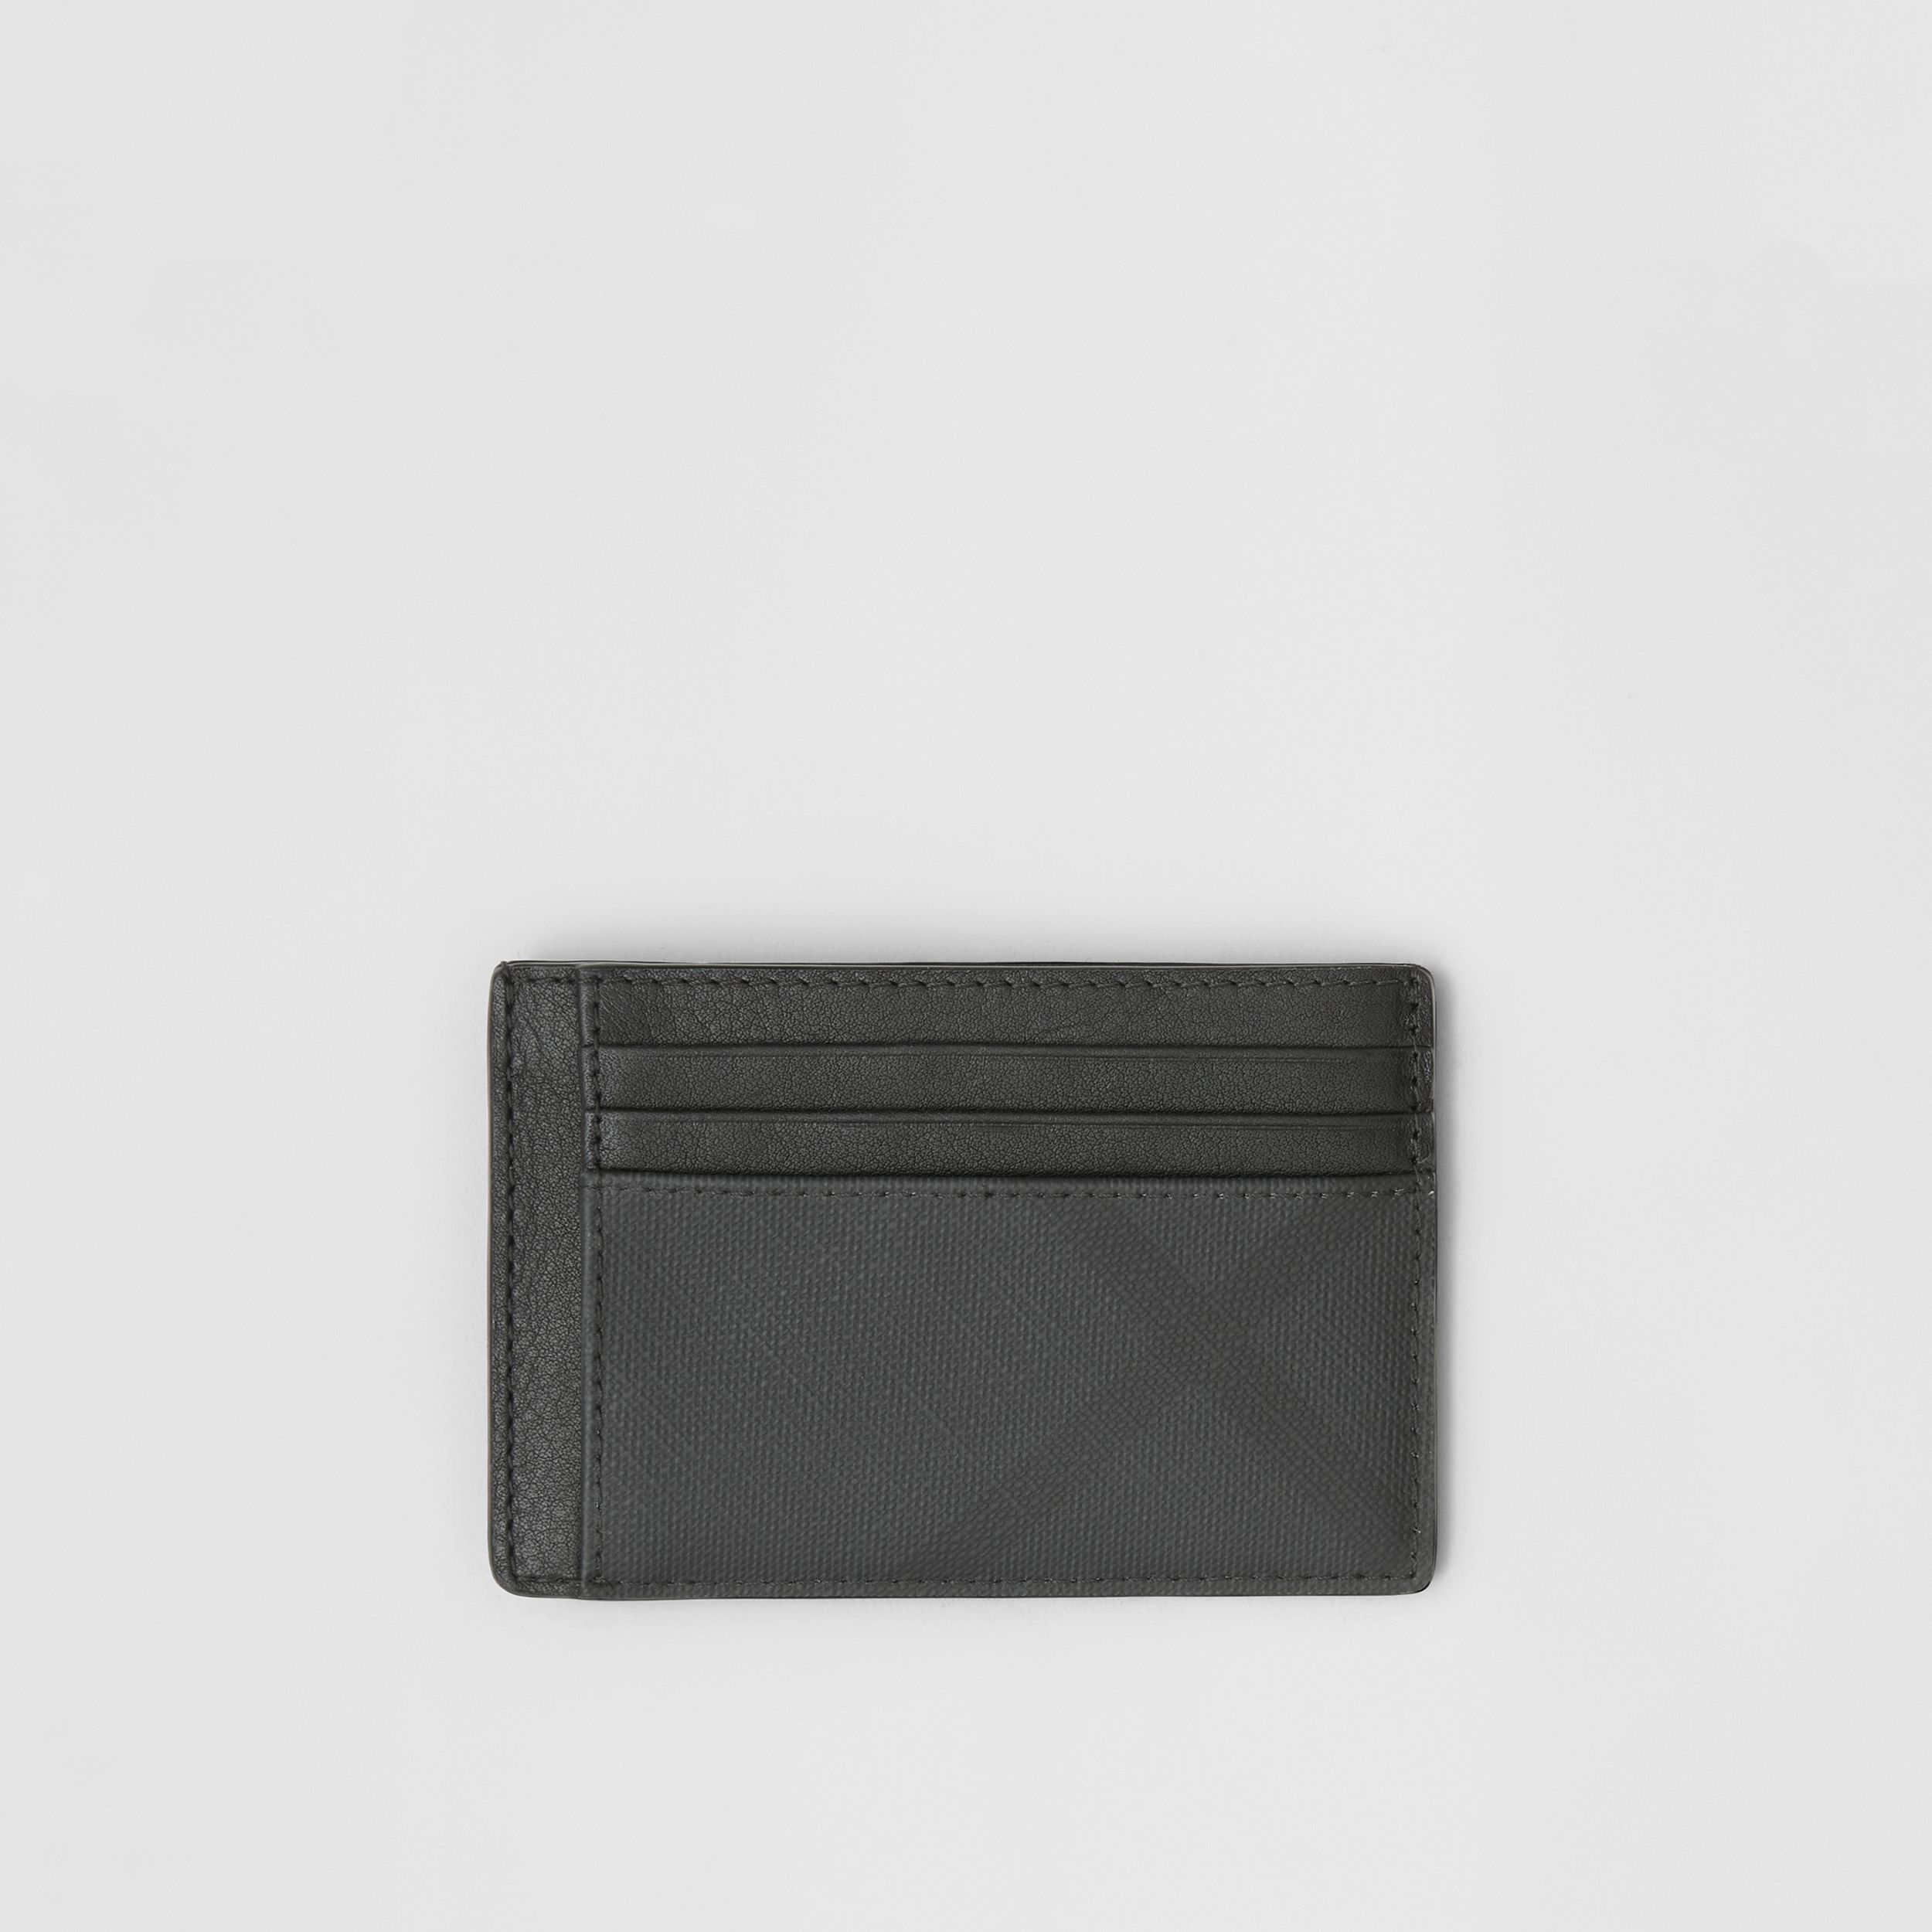 London Check and Leather Money Clip Card Case in Dark Charcoal - Men | Burberry Canada - 1